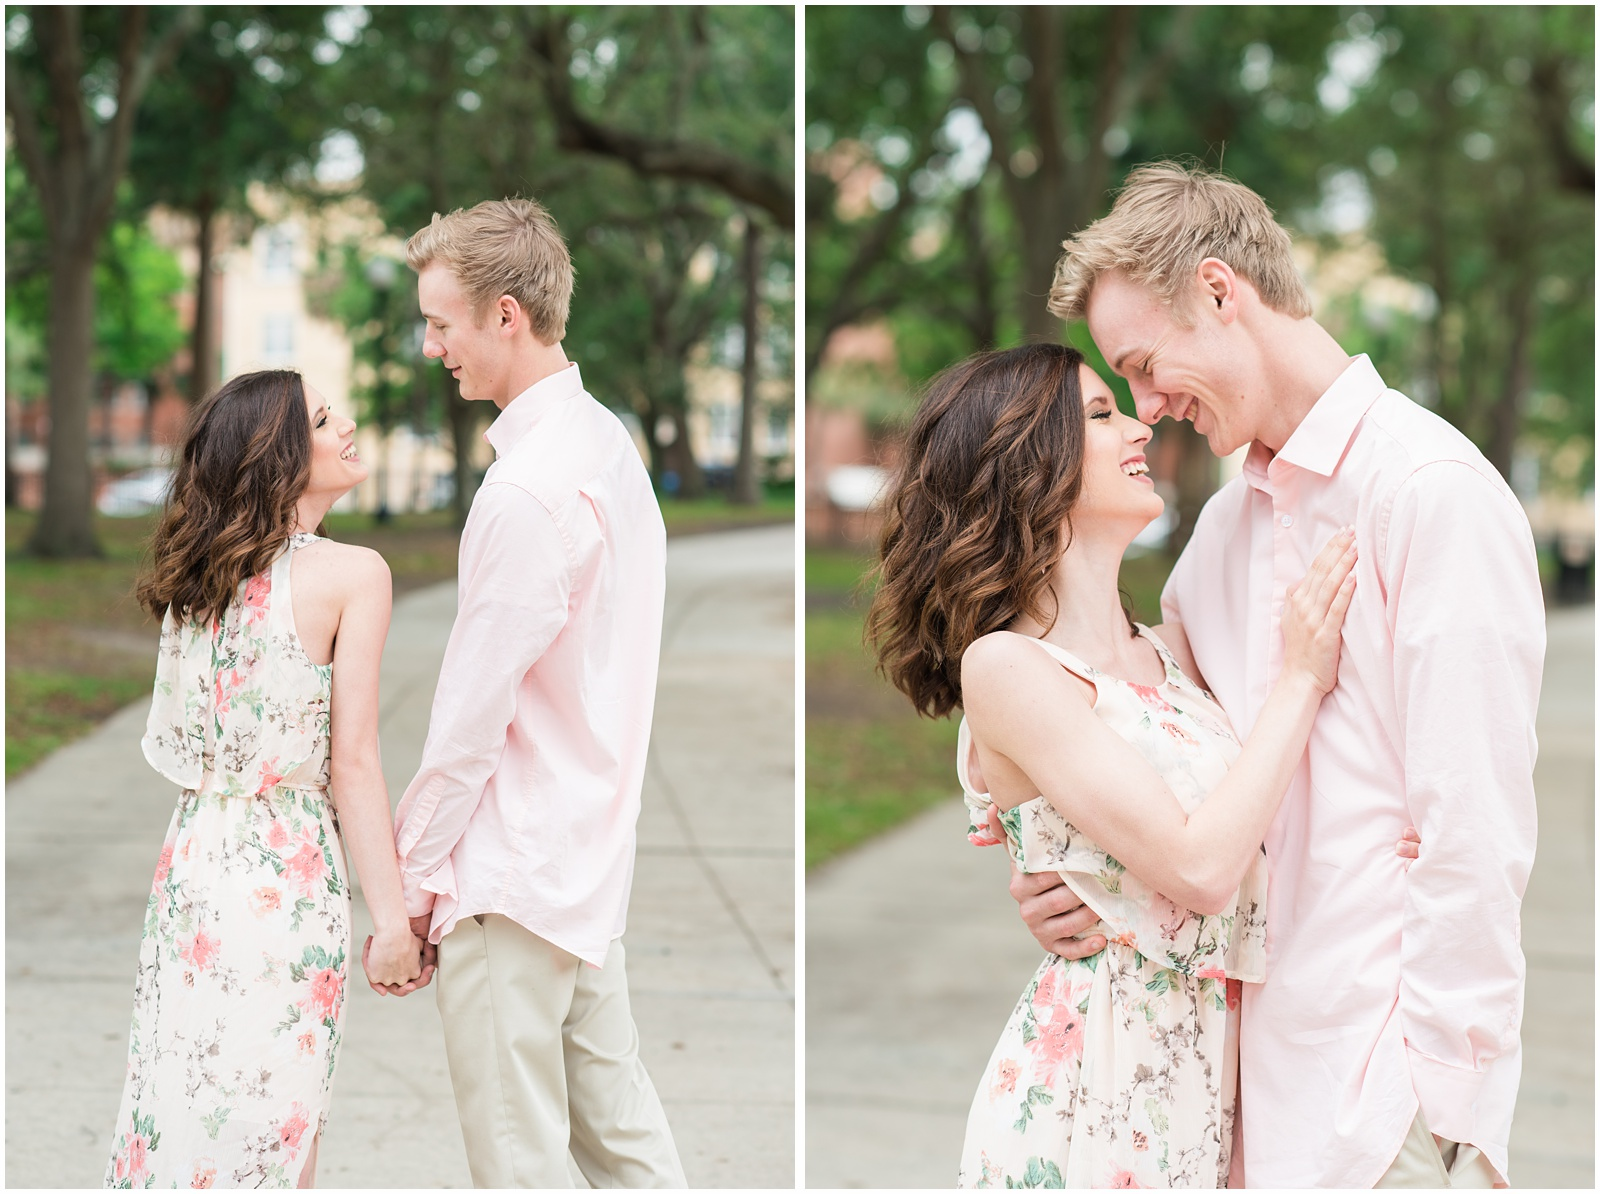 Jacksonville_Florida_Memorial Park_Engagement_Portraits_6.jpg